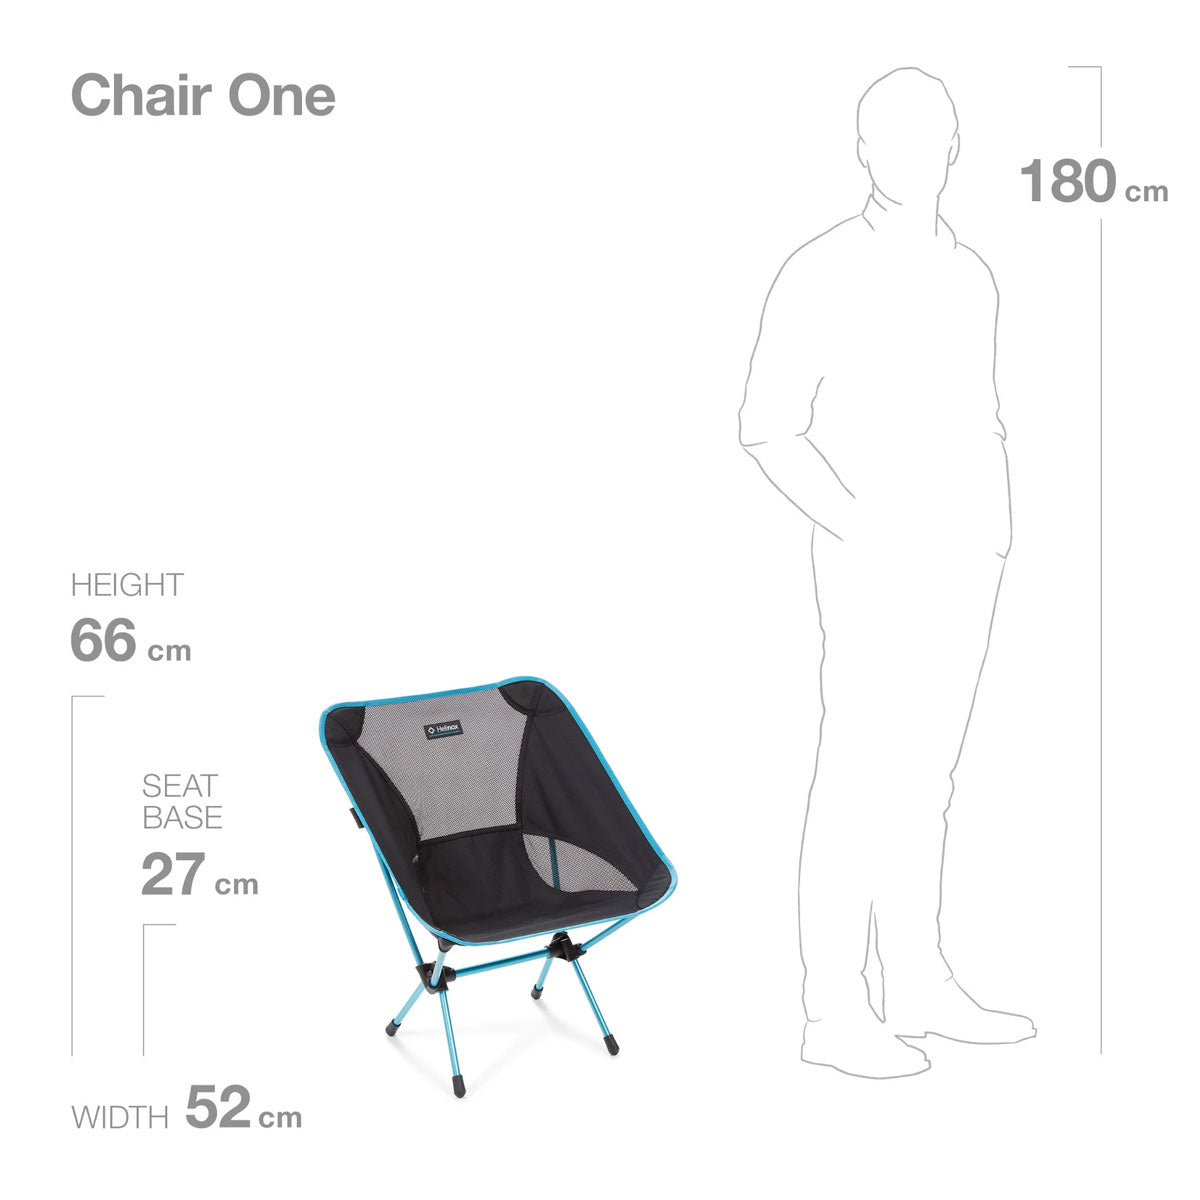 Helinox Chair One overview